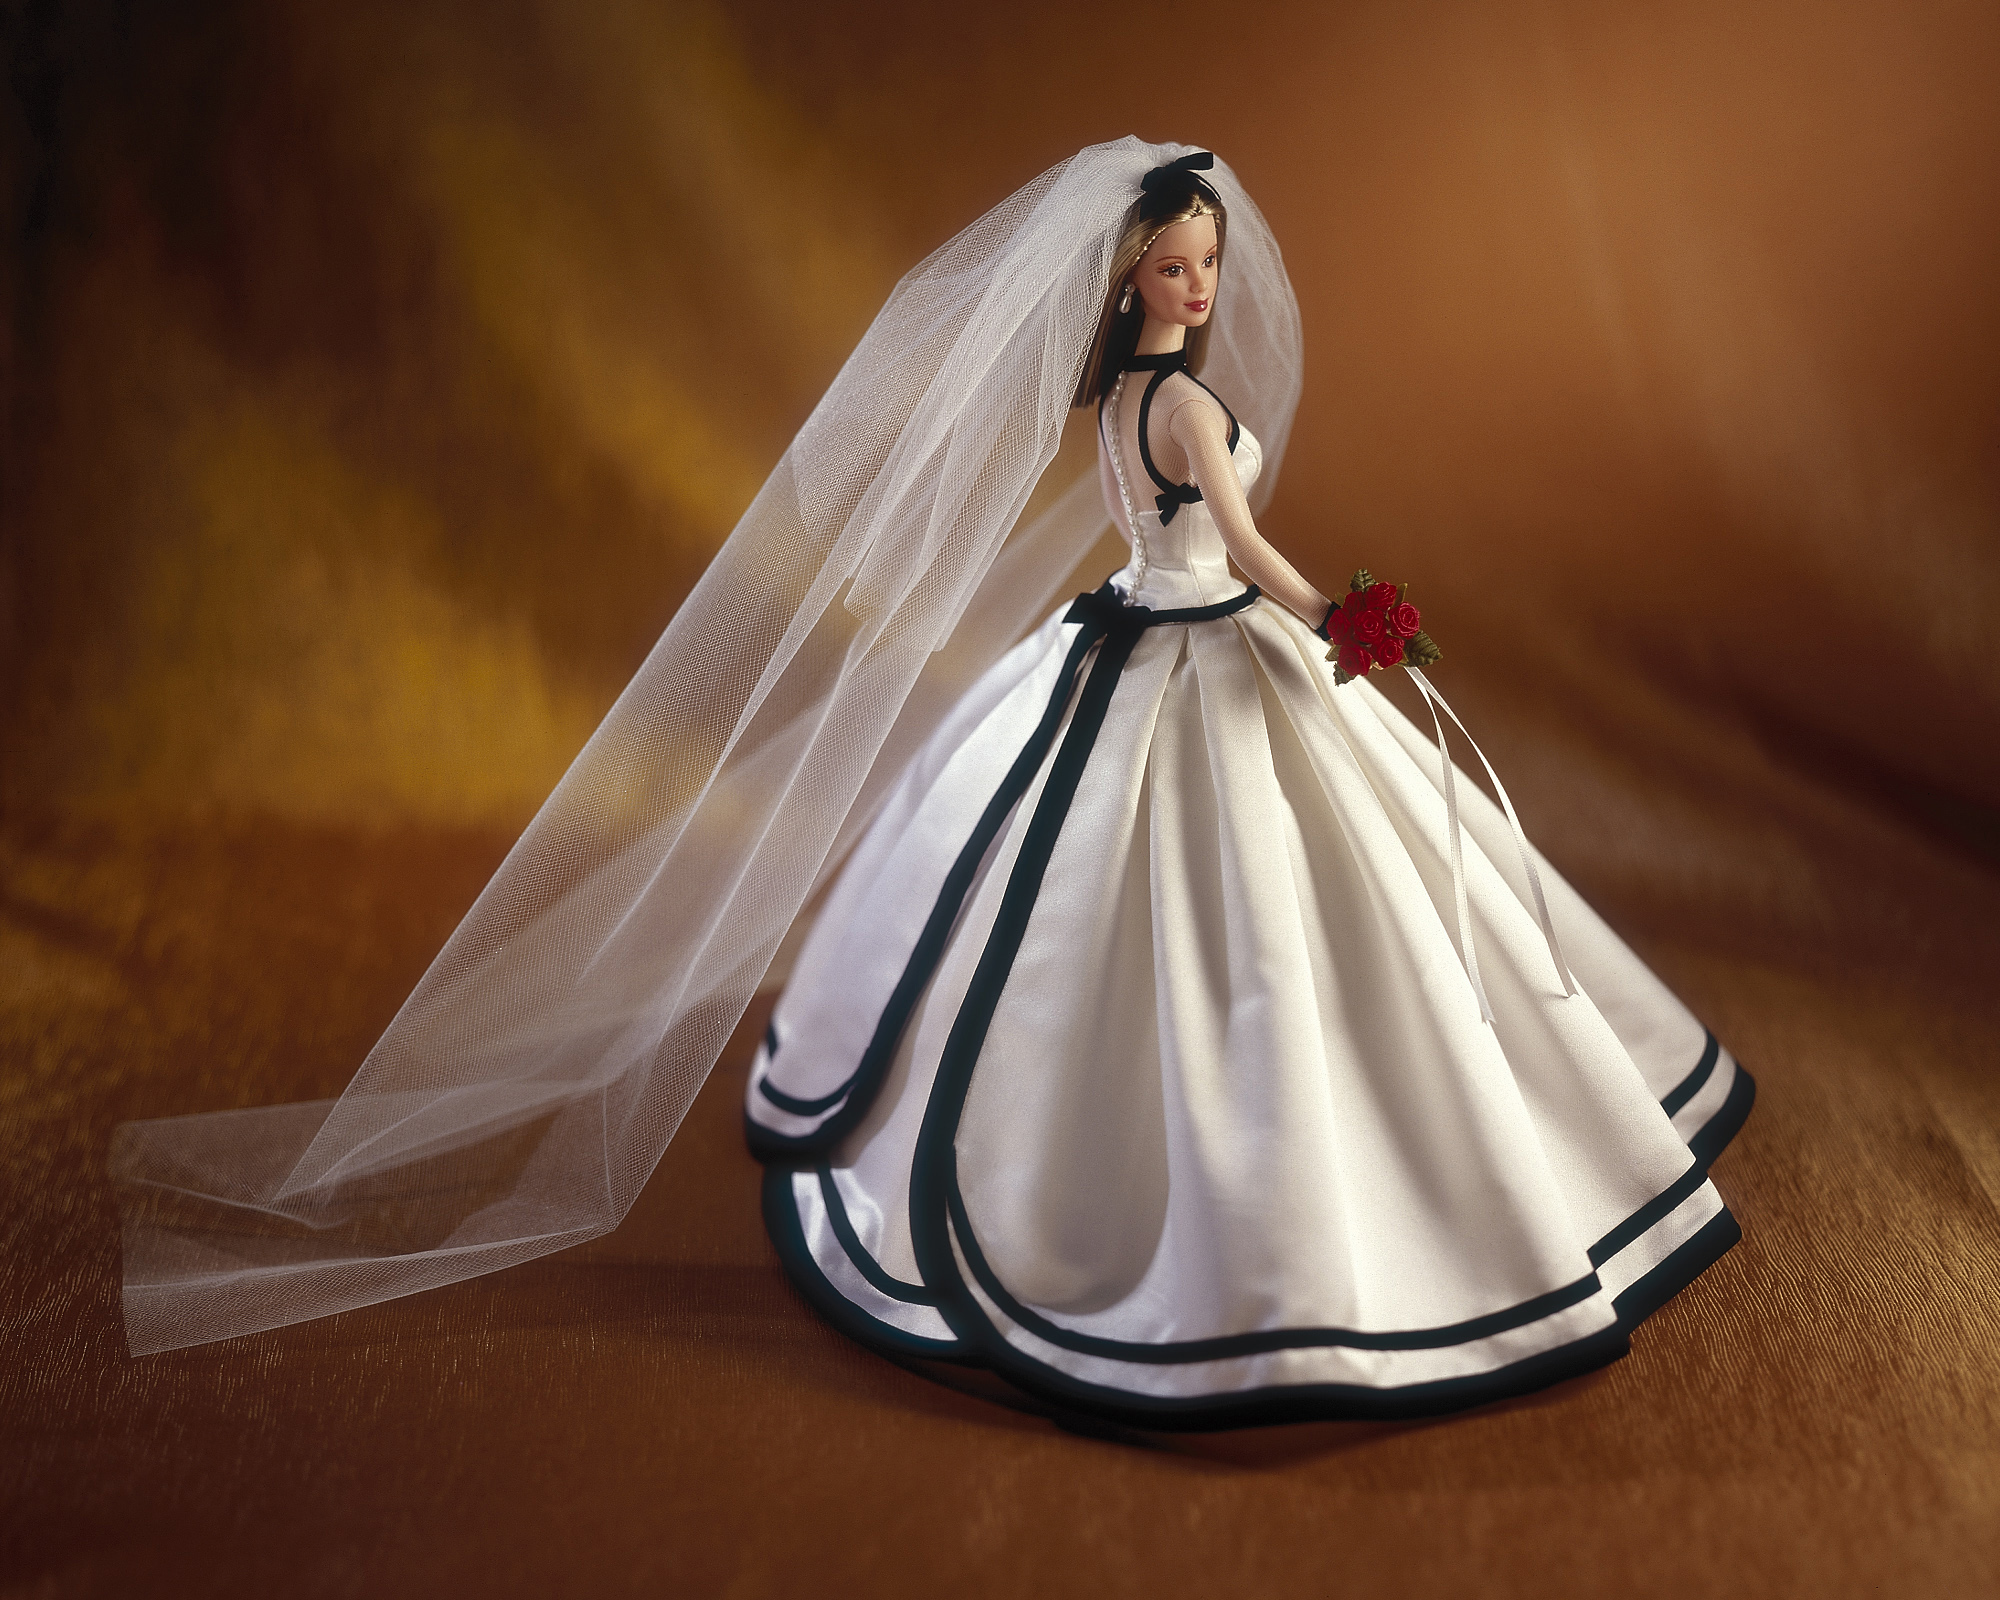 The Vera Wang Barbie Doll, released in 1998.